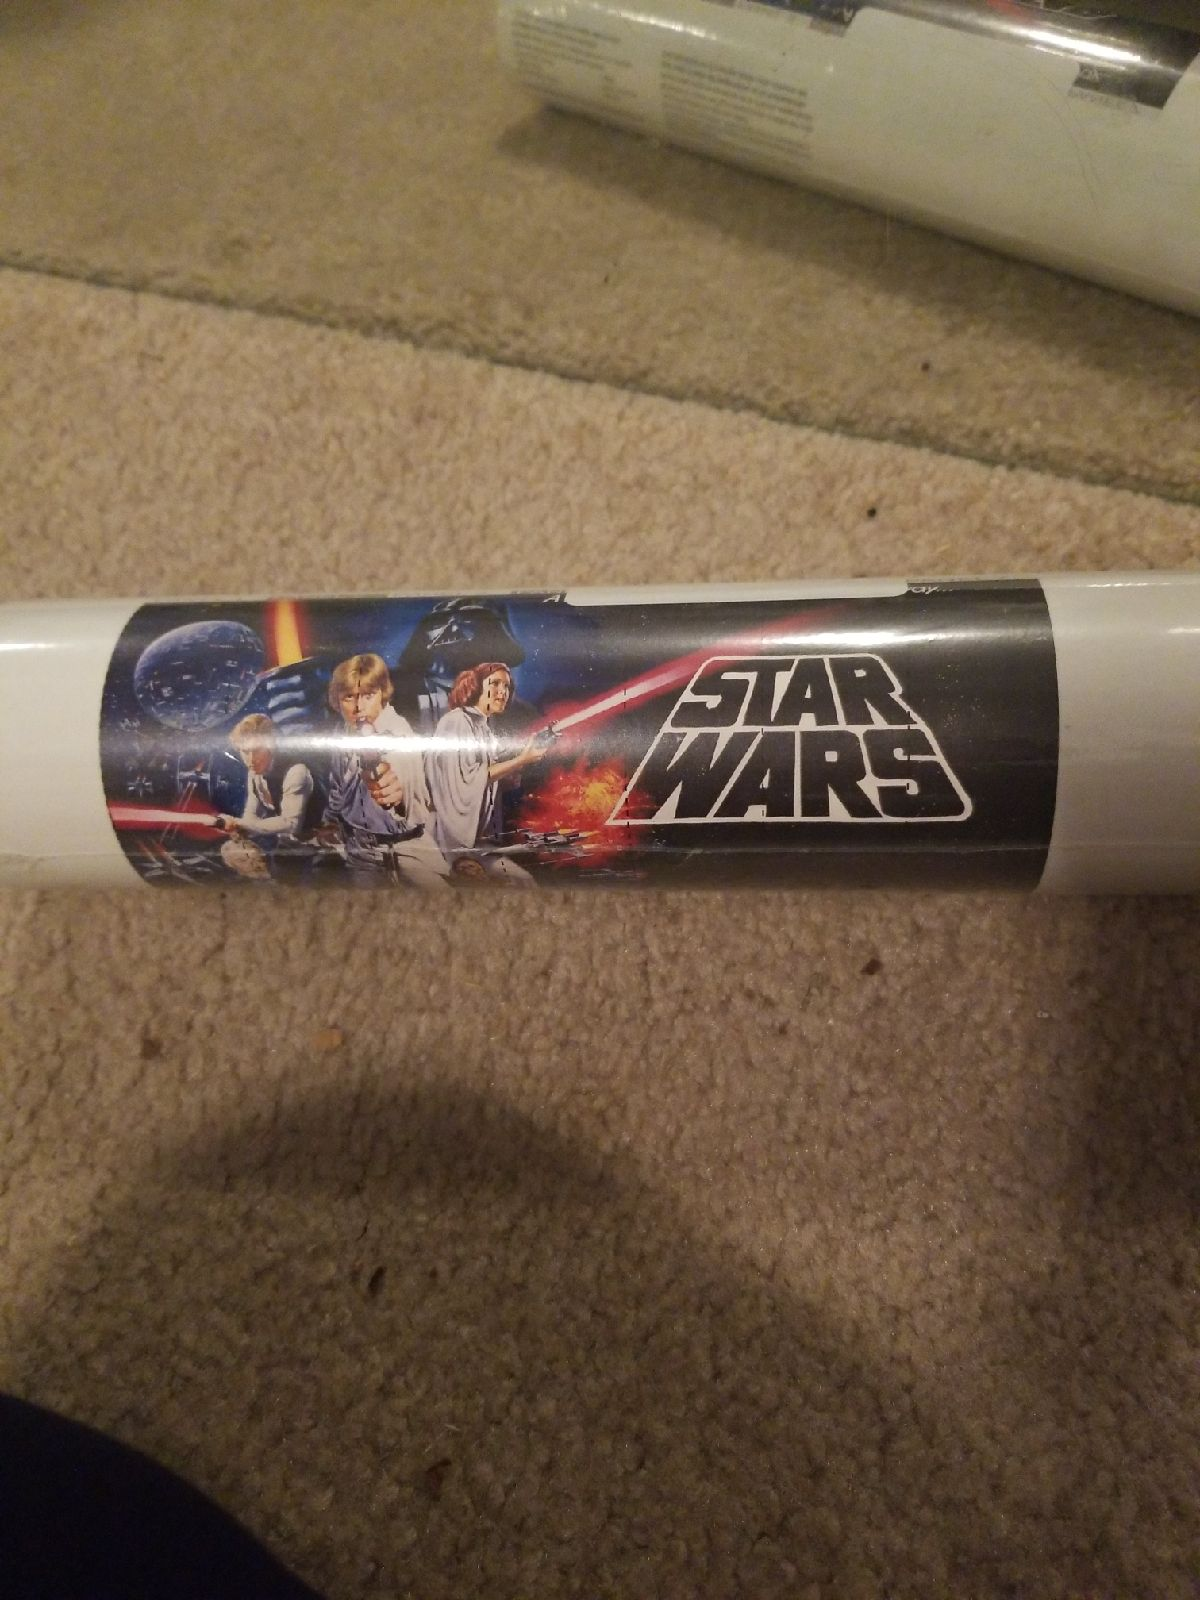 Star Wars Limited Edition Wall Mural